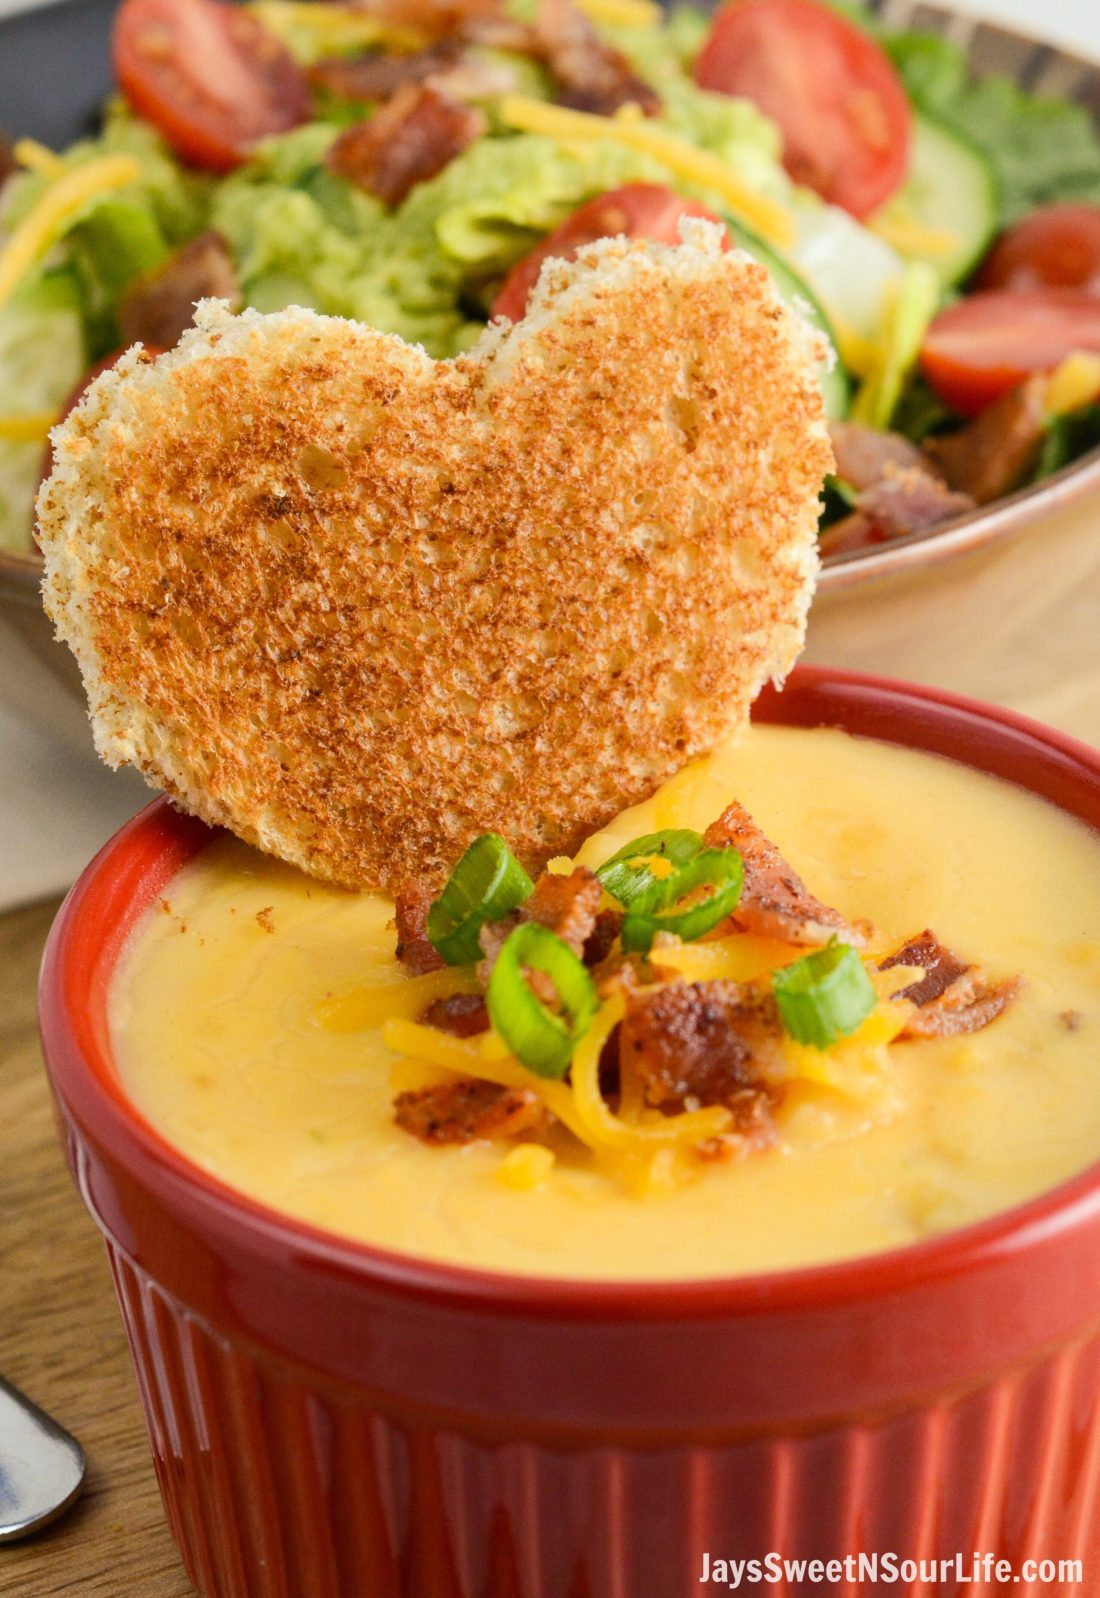 The new Idahoan® Steakhouse® Loaded Potato Soup is delicious, topped with a heart shaped piece of honey whole wheat bread.